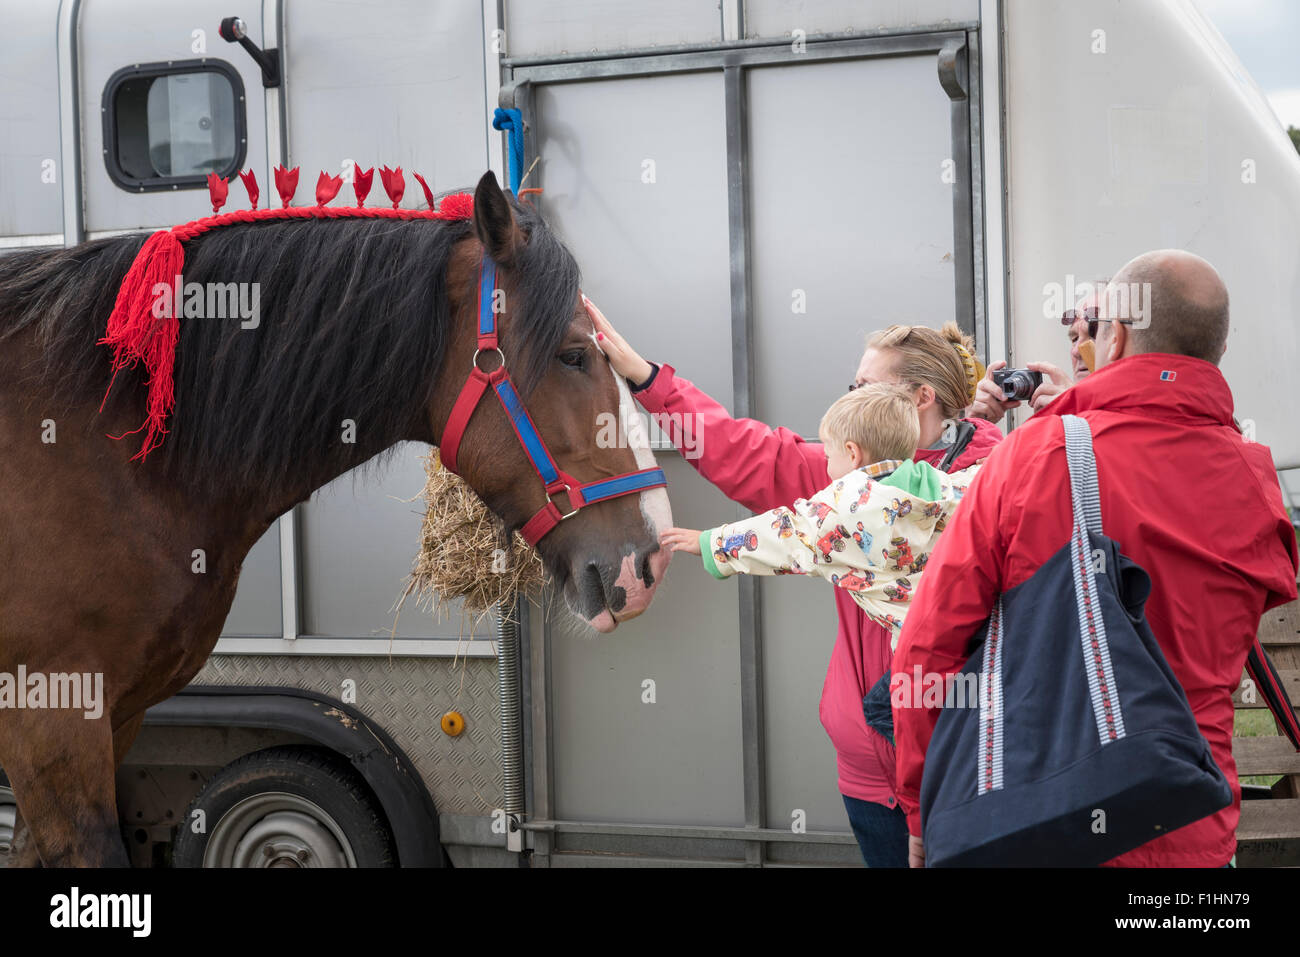 Mother and child stroking heavy horse at Steam rally and Country fair Stow cum Quy Cambridgeshire England 2015 Stock Photo